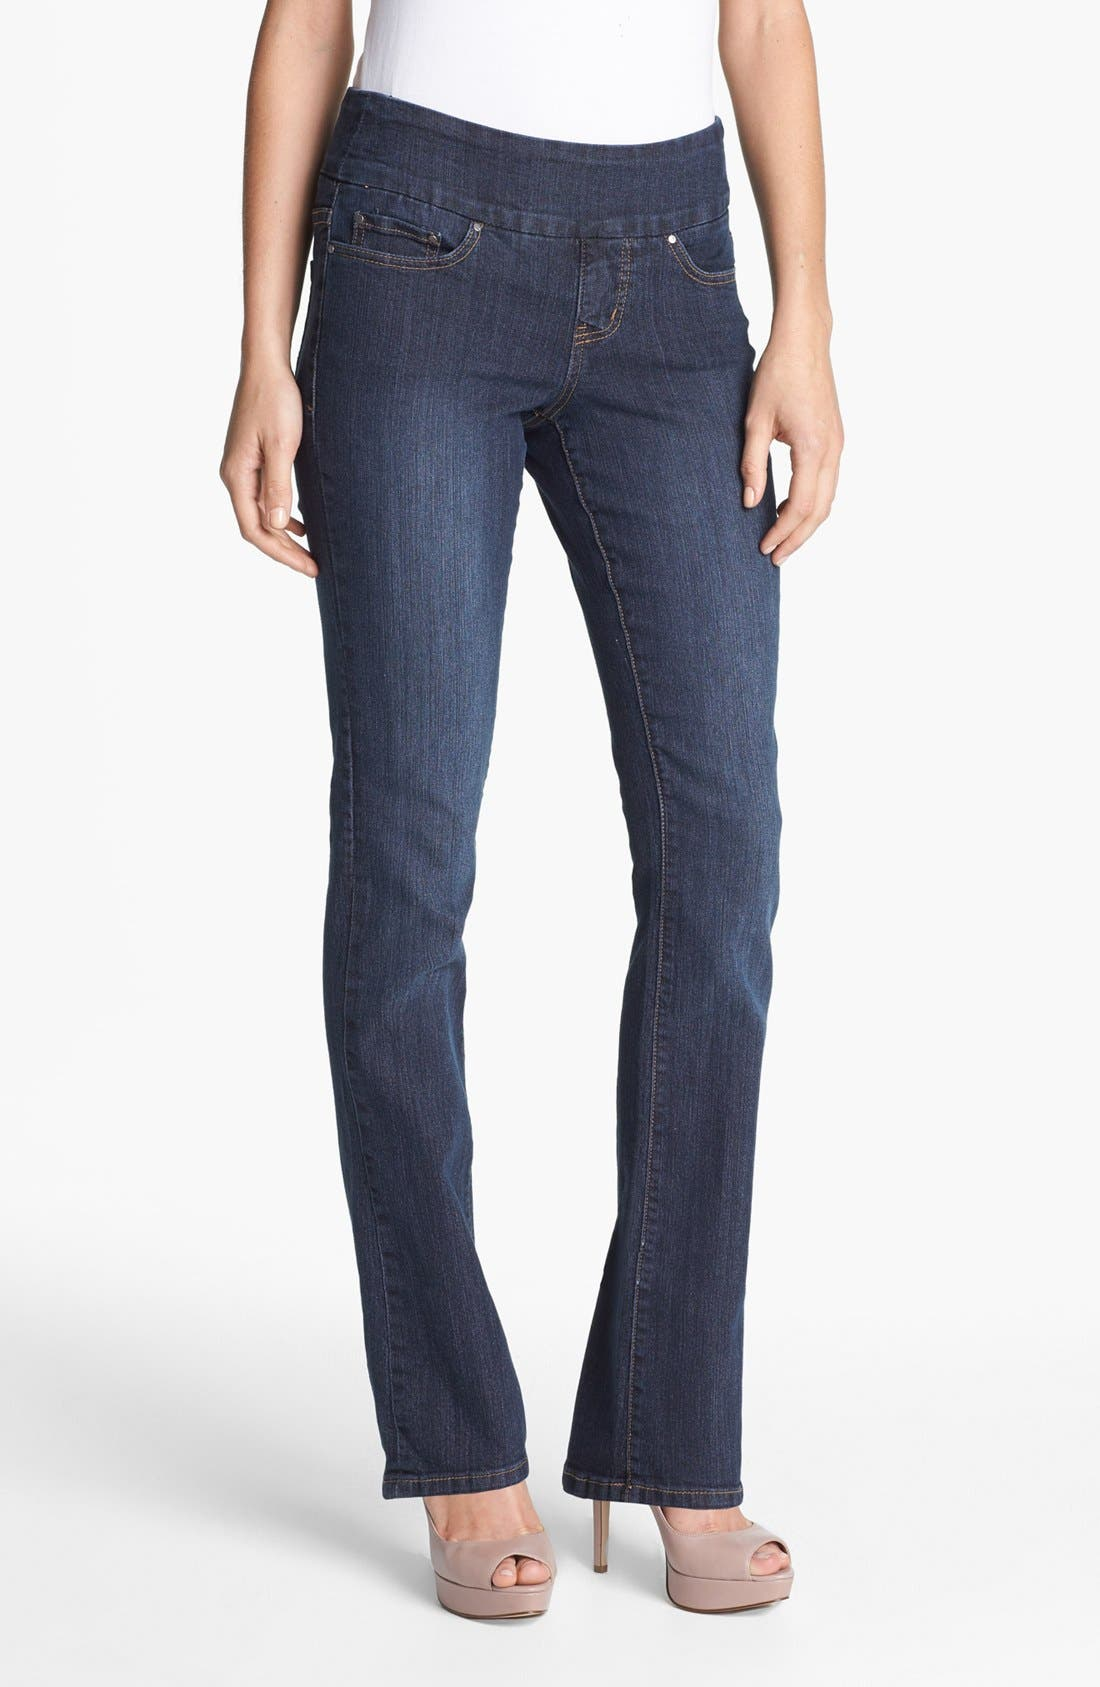 Main Image - Jag Jeans 'Paley' Pull-On Bootcut Jeans (Atlantic Blue) (Petite)